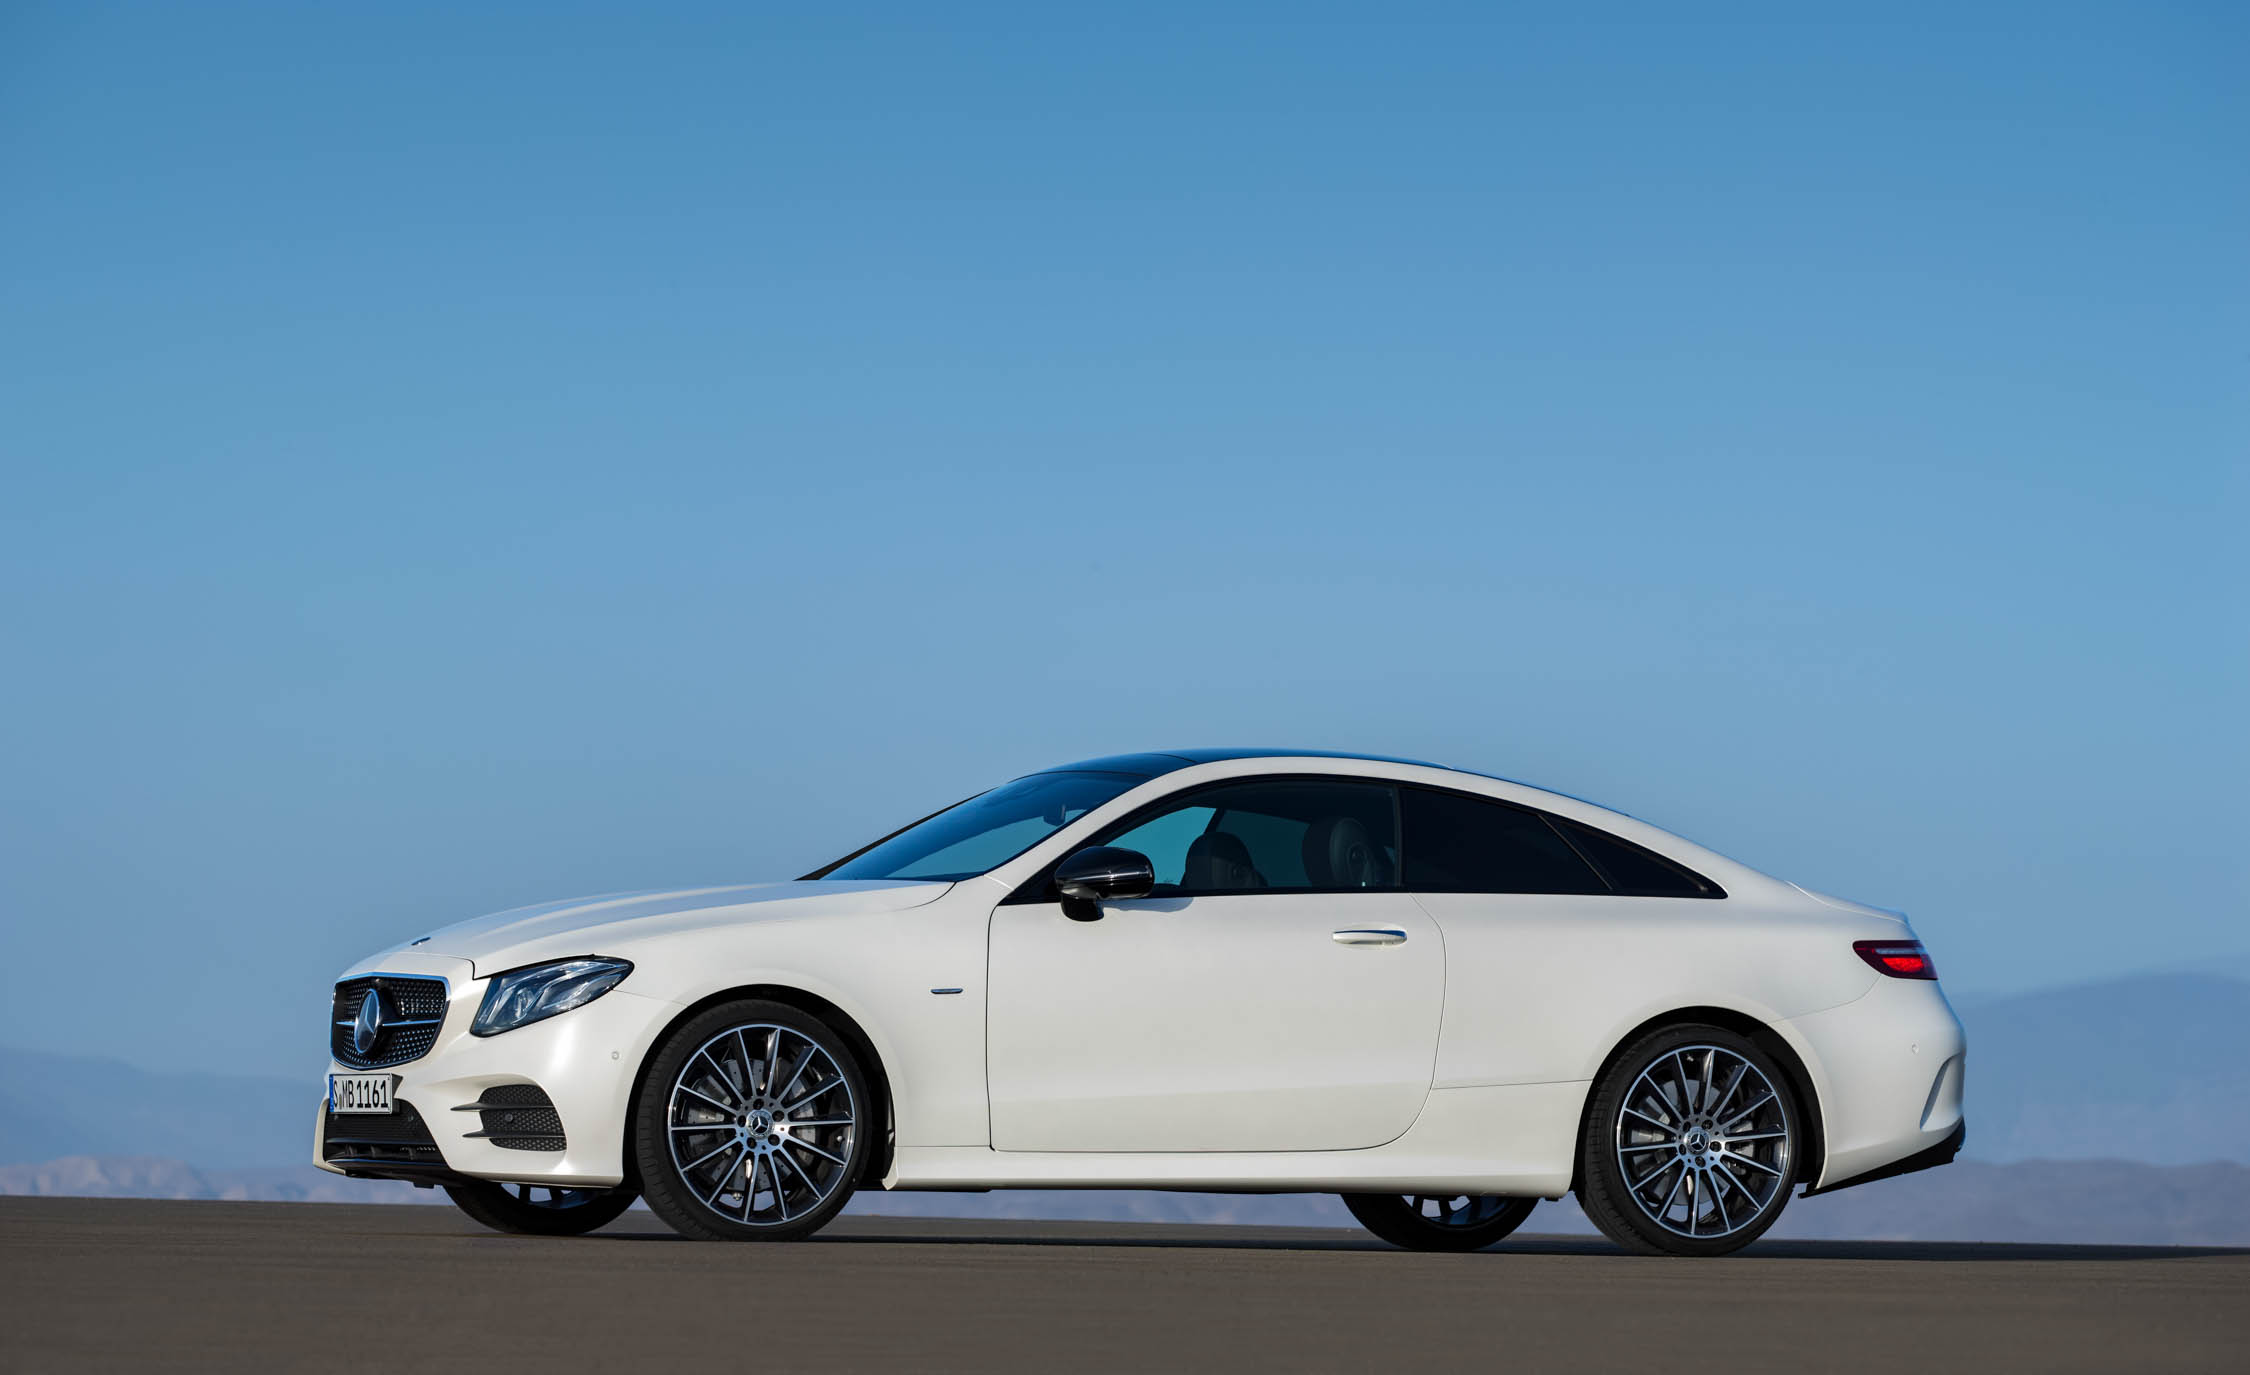 2018 Mercedes Benz E400 Coupe (View 31 of 60)